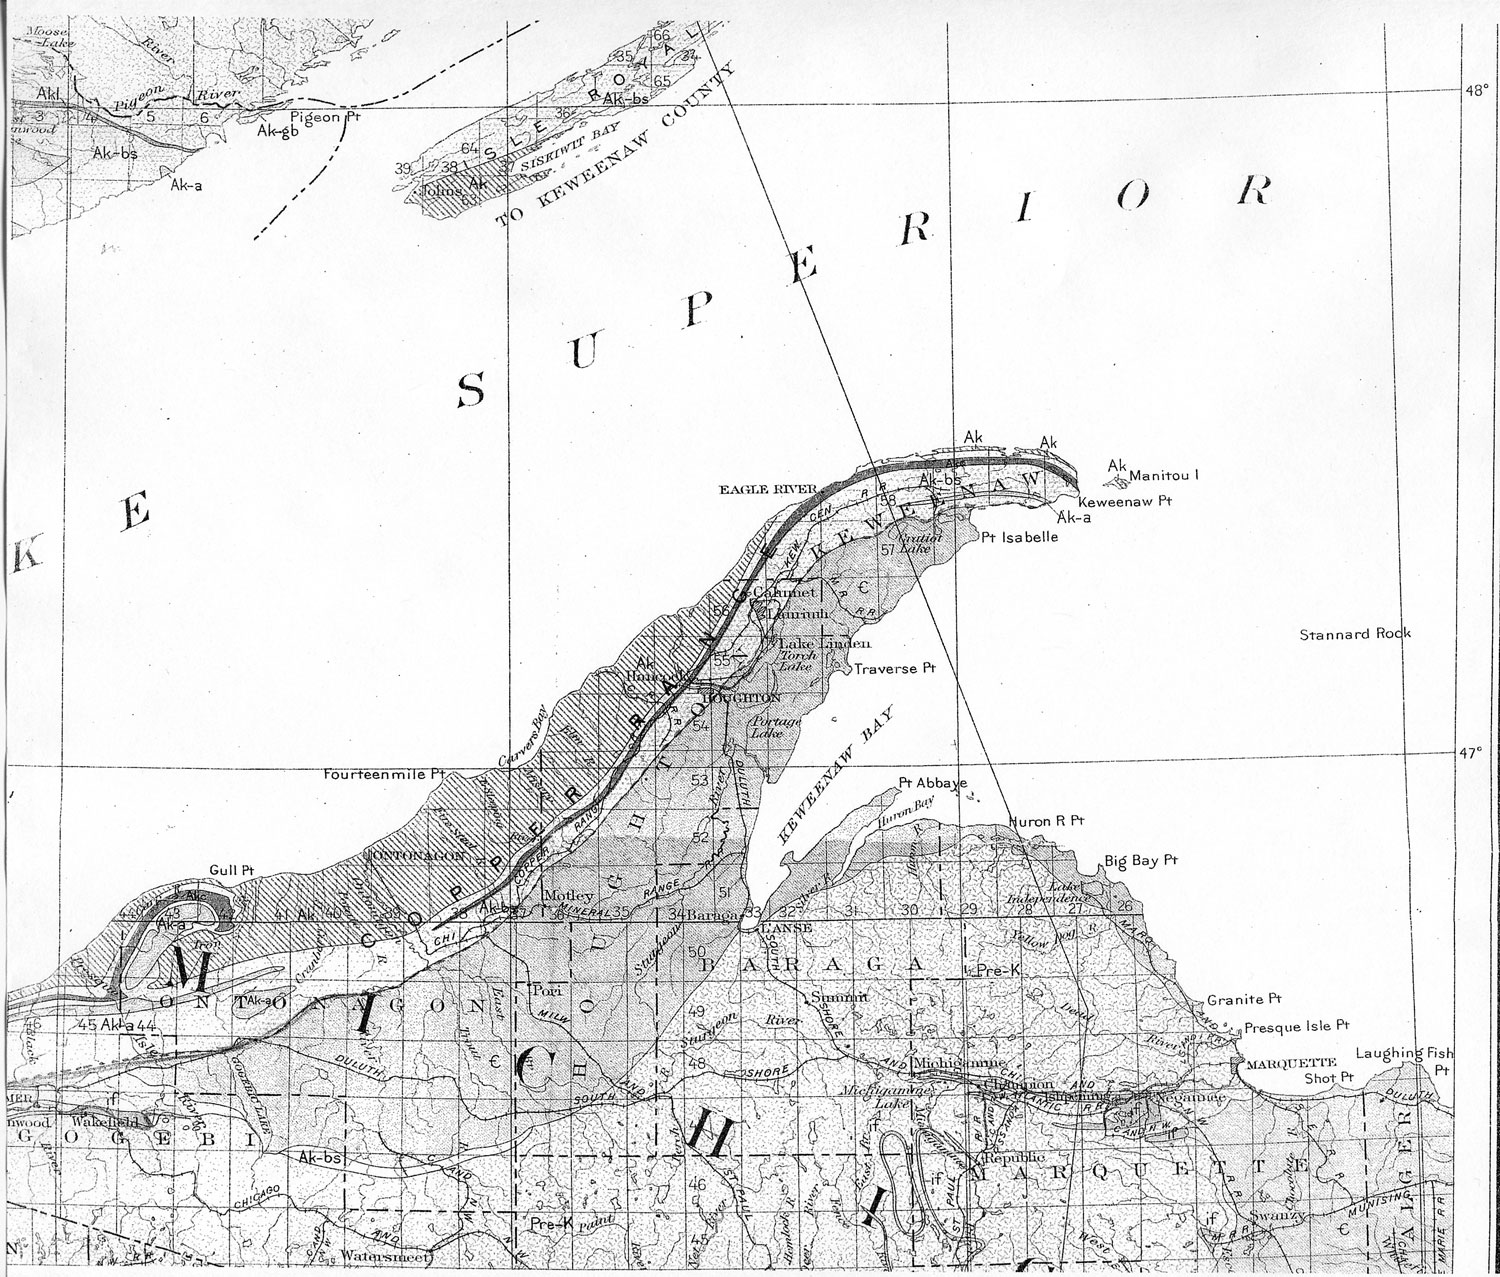 Michigan keweenaw county allouez -  Thinning Of Other Flows Though Some Thin Rather Abruptly As The Mandan Flow North Of Delaware In Keweenaw County And The Thick Flow Above No